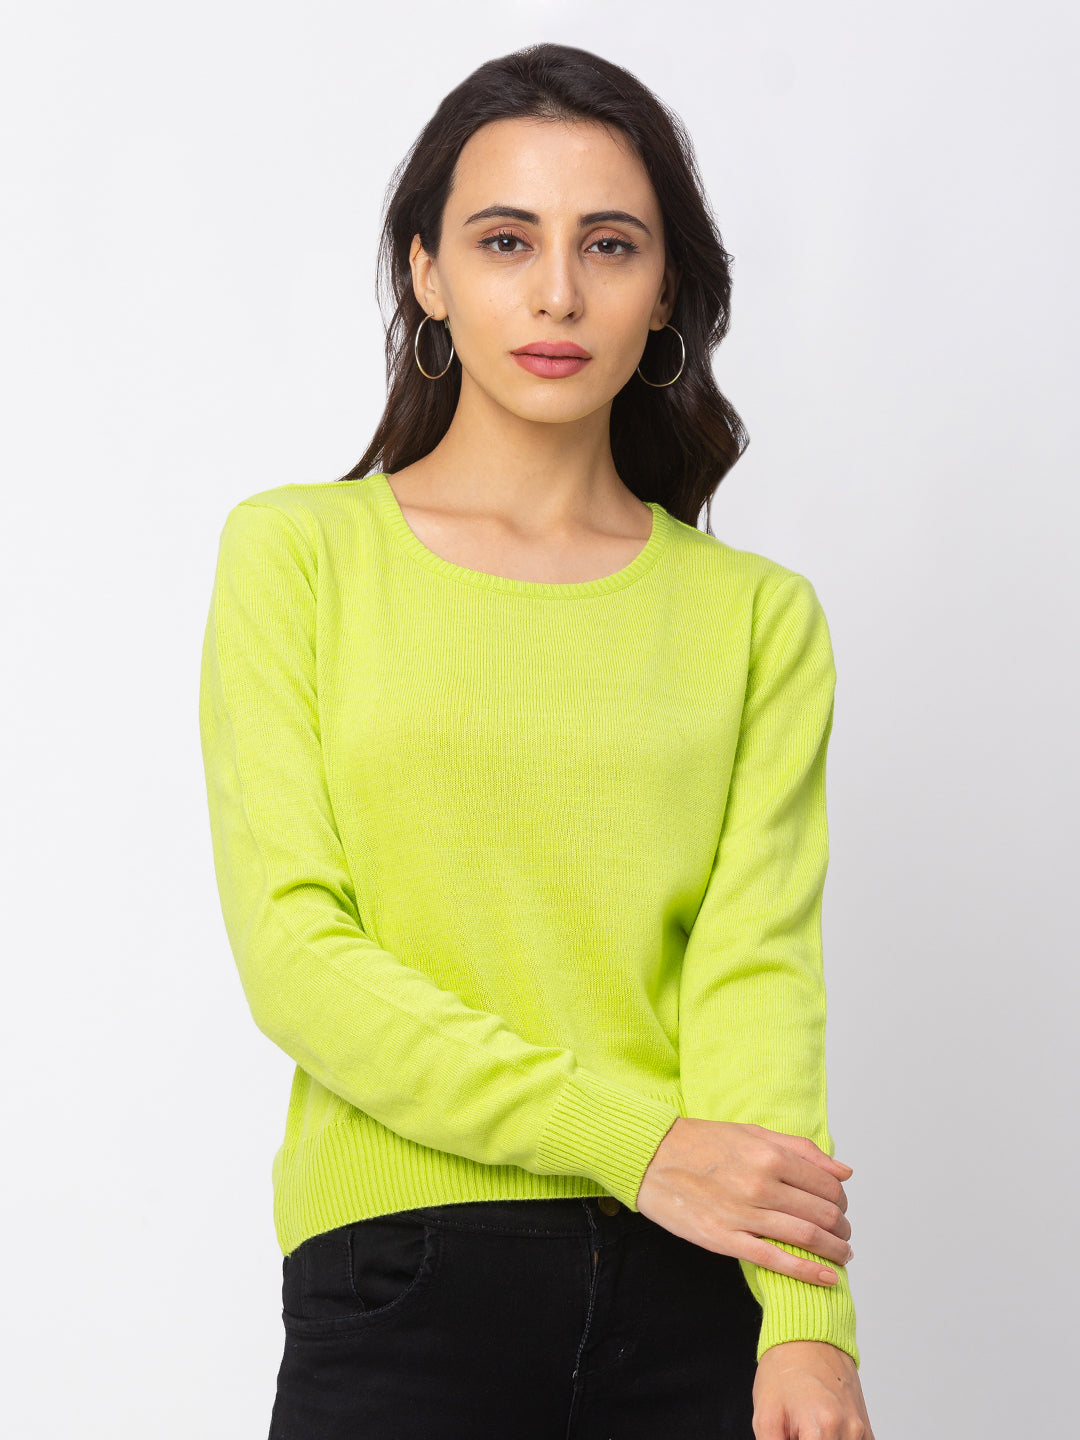 Globus Lime Green Solid Sweater-1